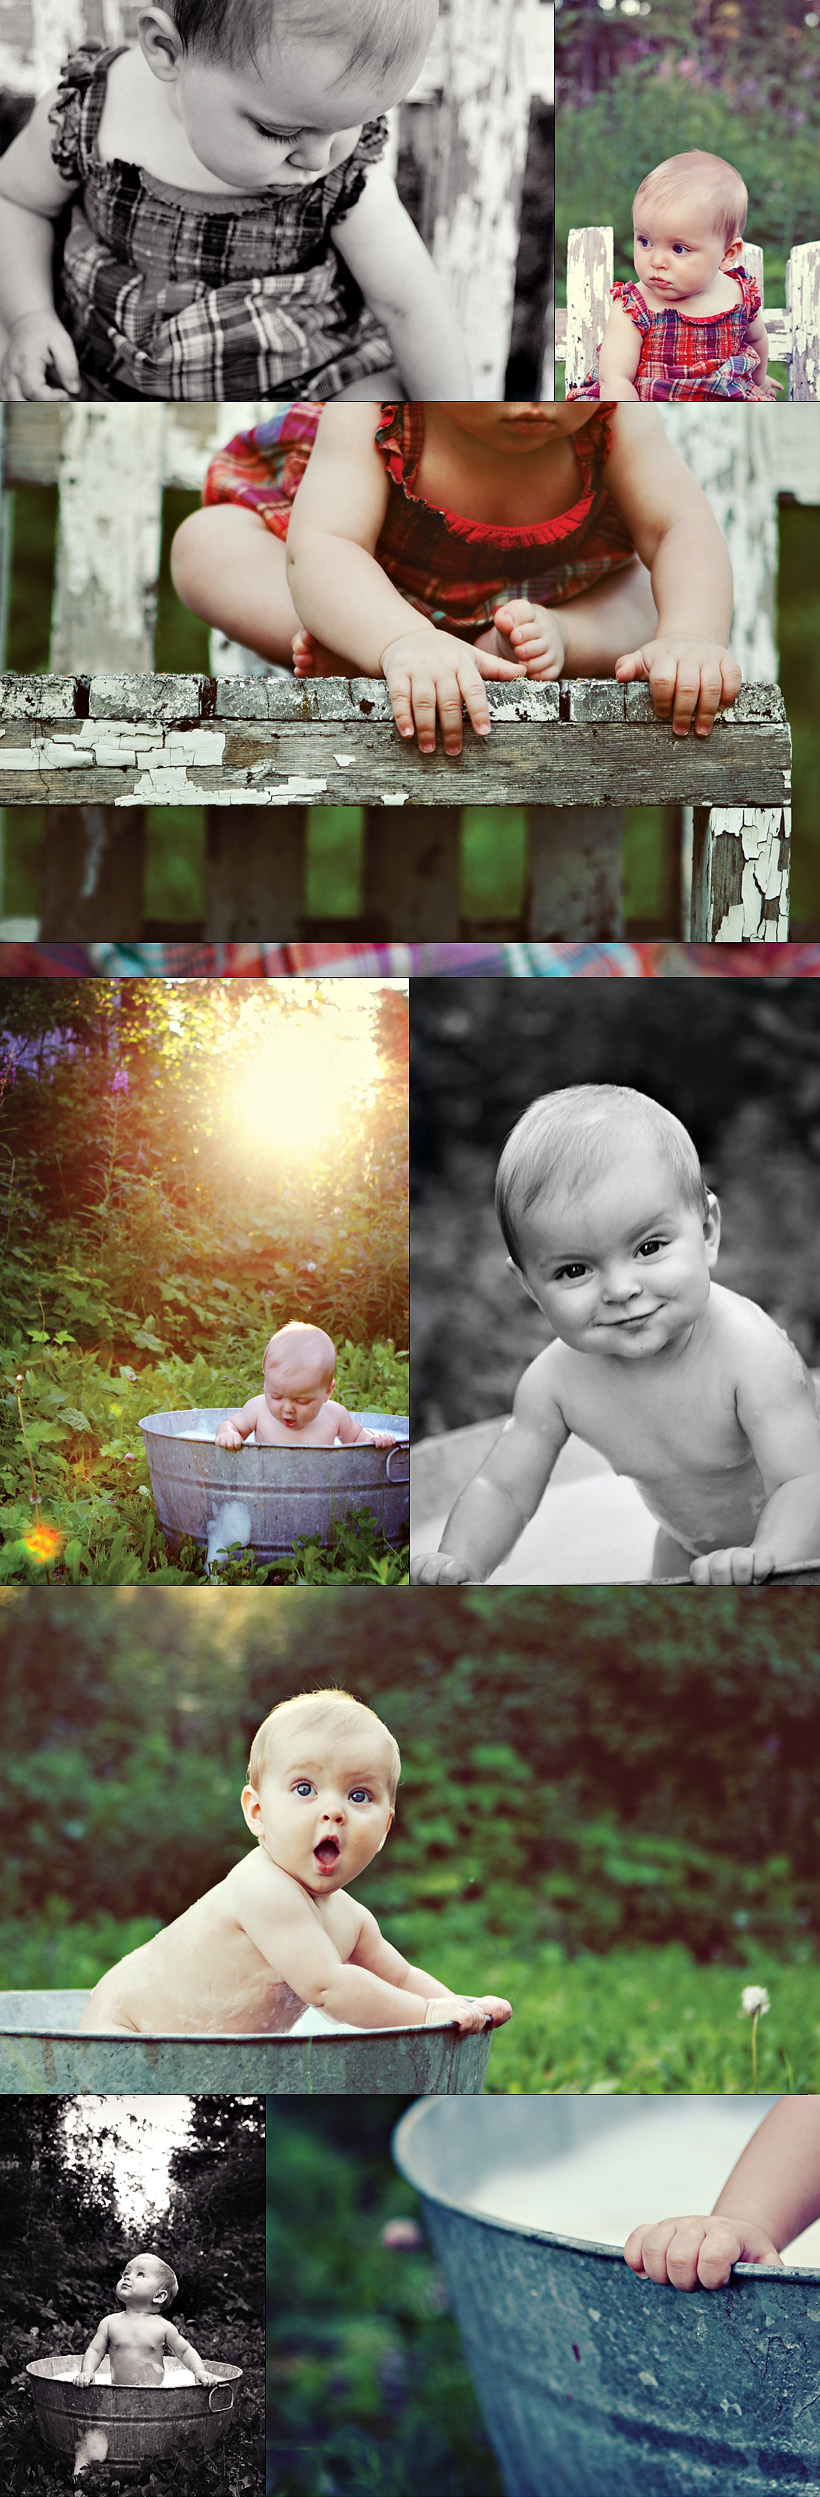 edmonton baby photographer